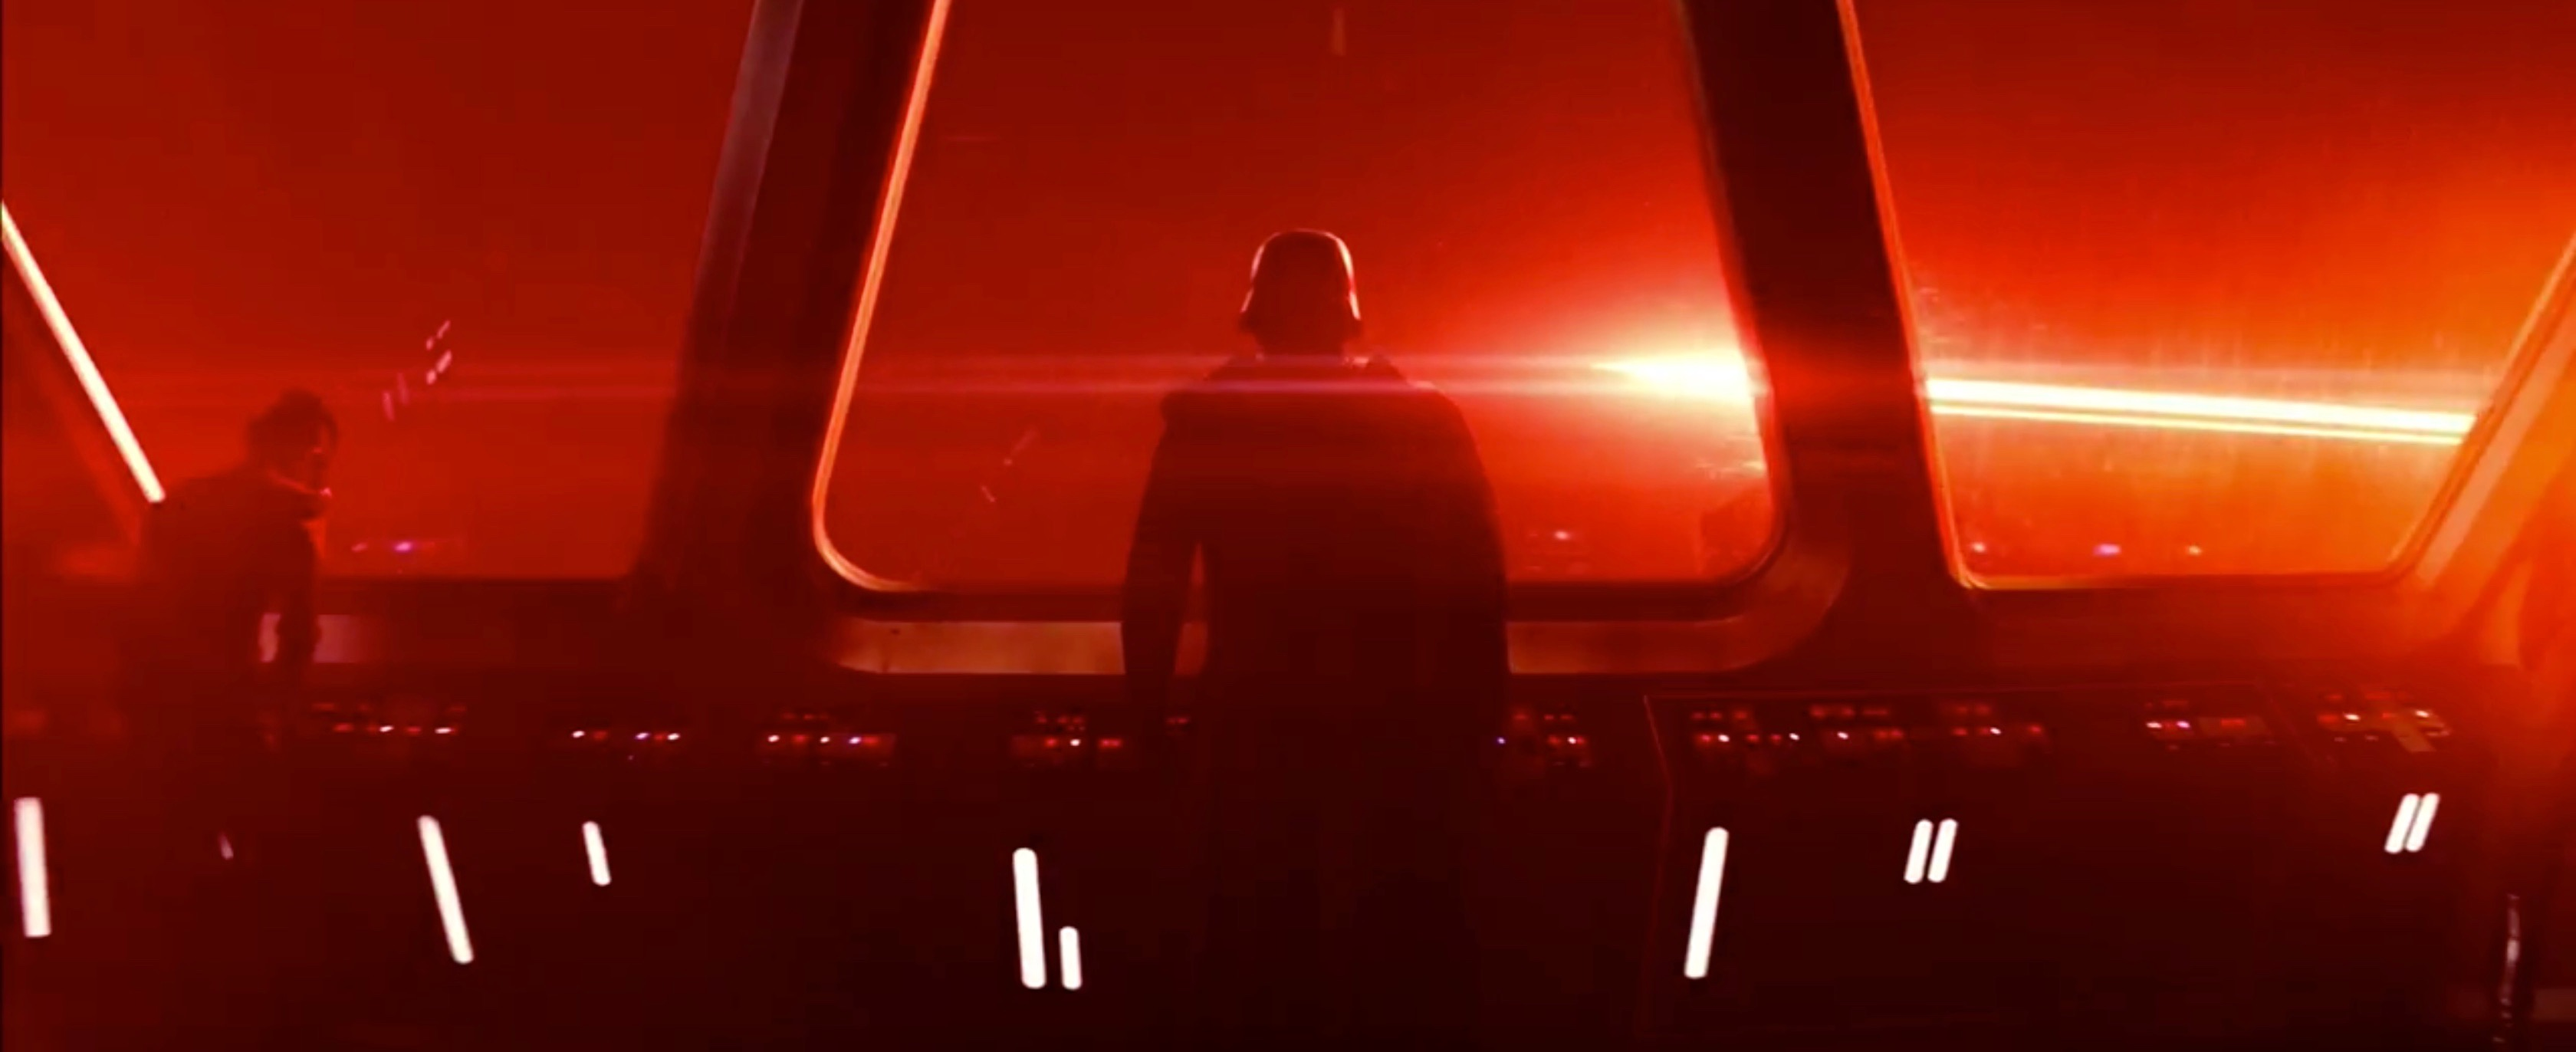 Star Wars VII Trailer Analysis - 5 of 20